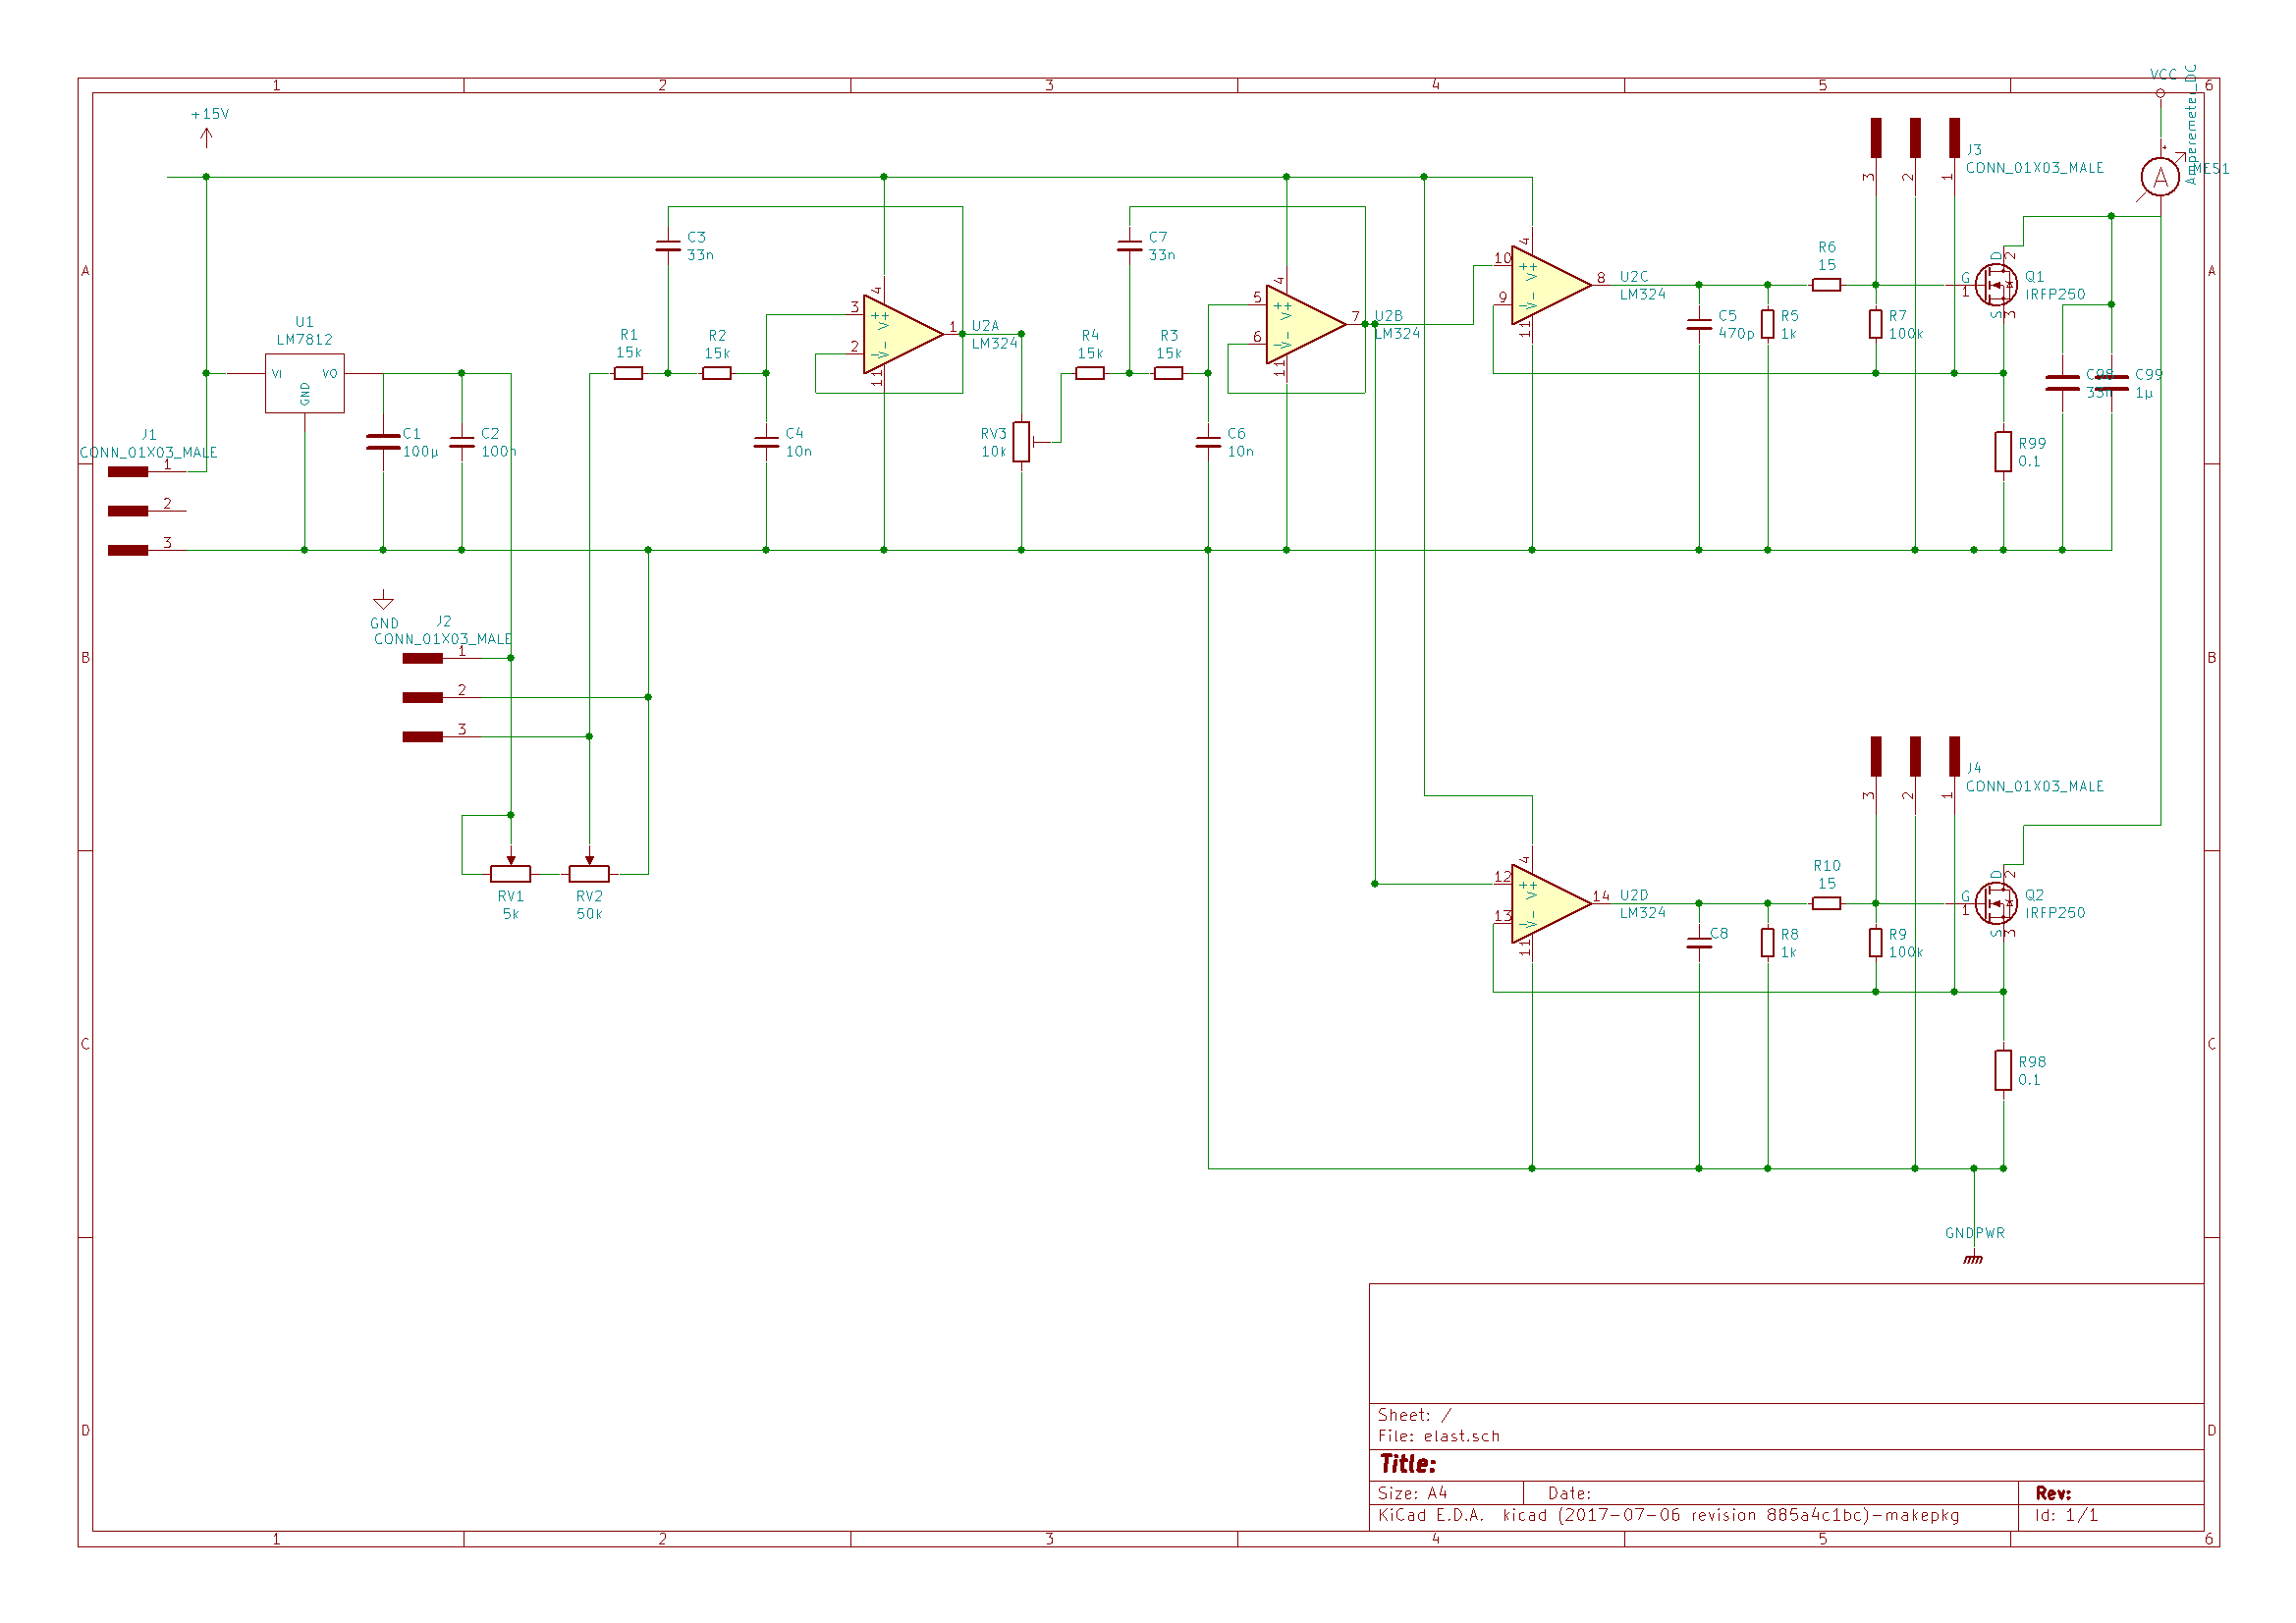 A Beefy Electronic Load P4f1 Wan Hung Lo Electronics Displayport Schematic Heres The If You Click It Hard Gets Bigger